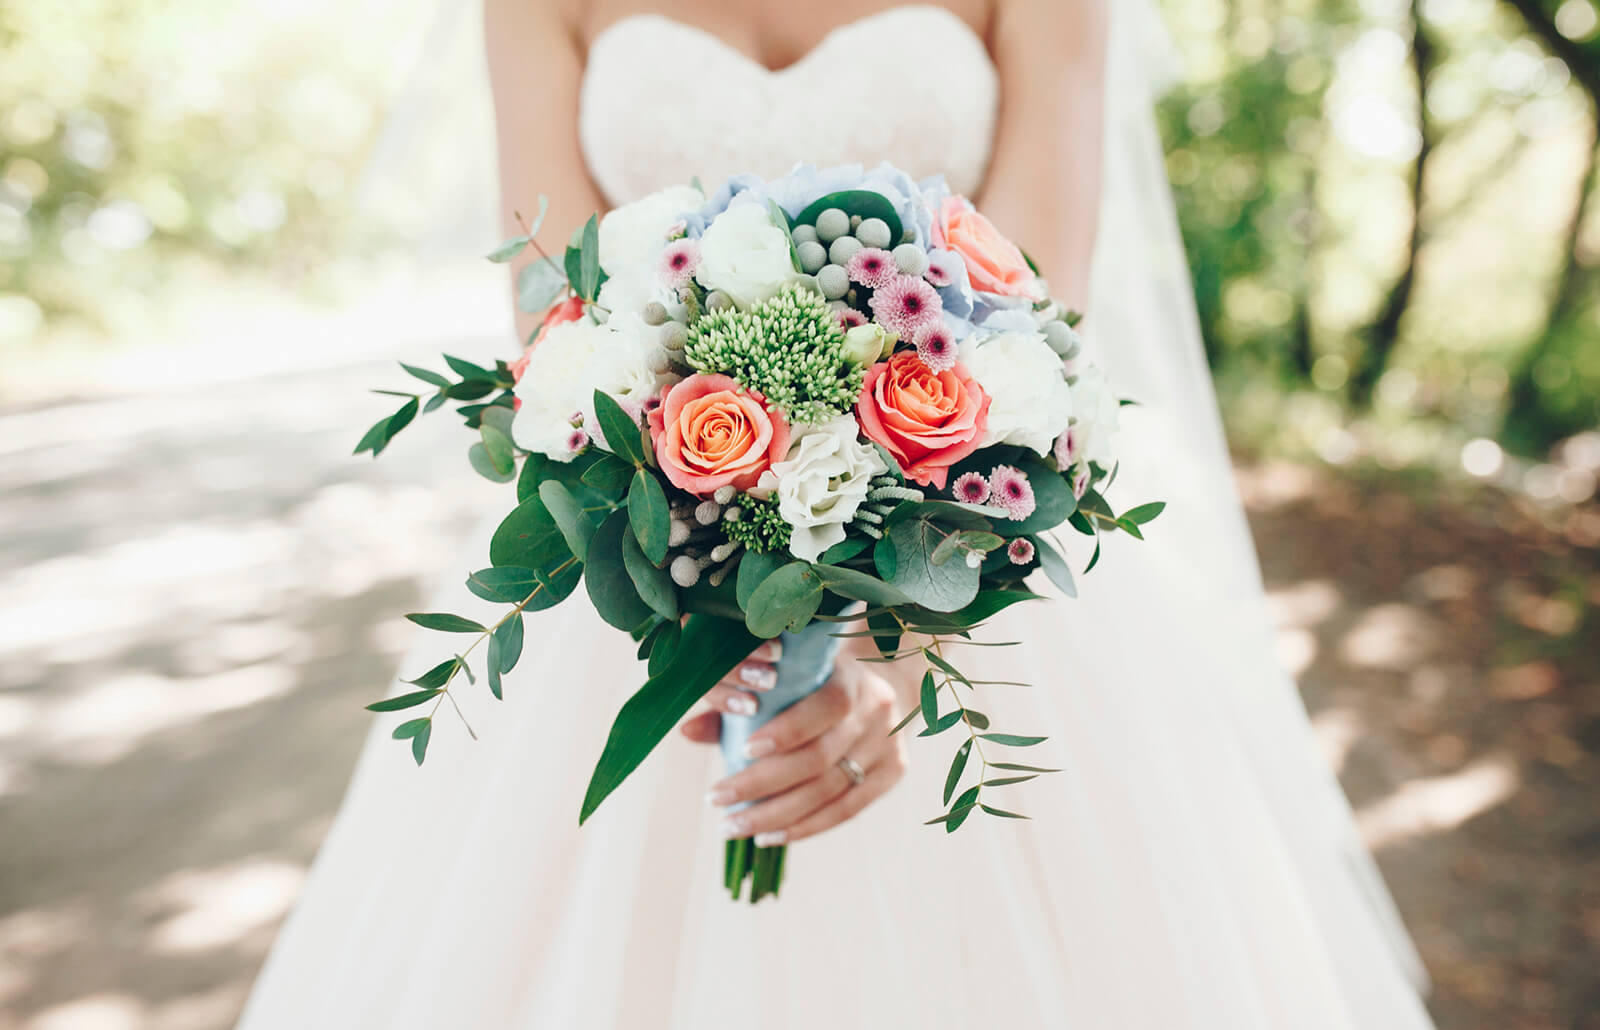 Wedding Flowers By Season Guide To Beautiful Blooms Lovetoknow